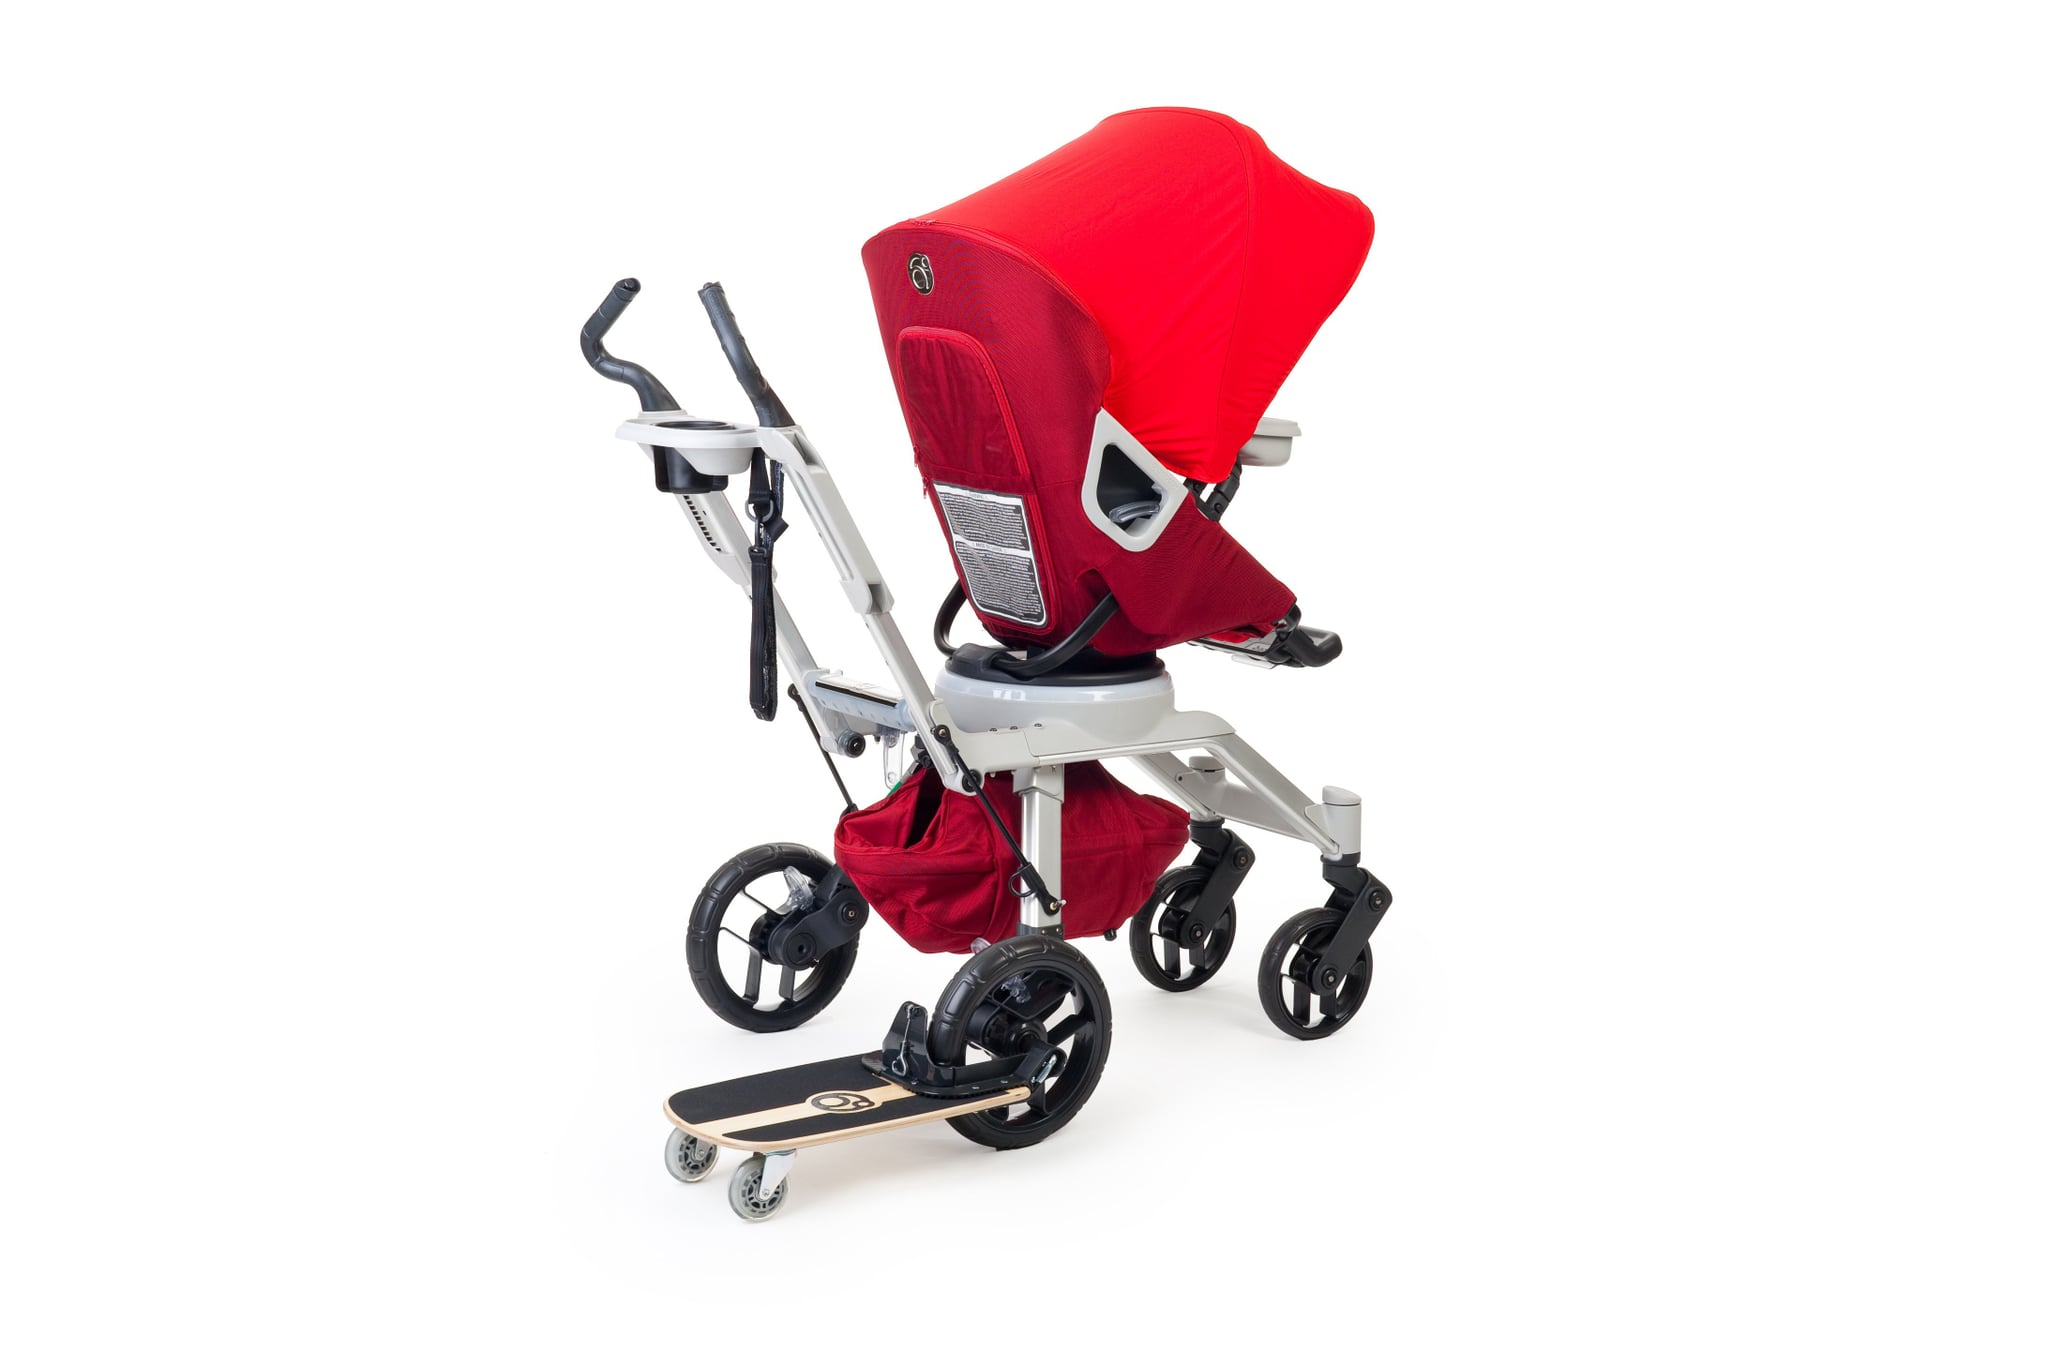 Photos Orbit S Stroller Skateboard The Sidekick